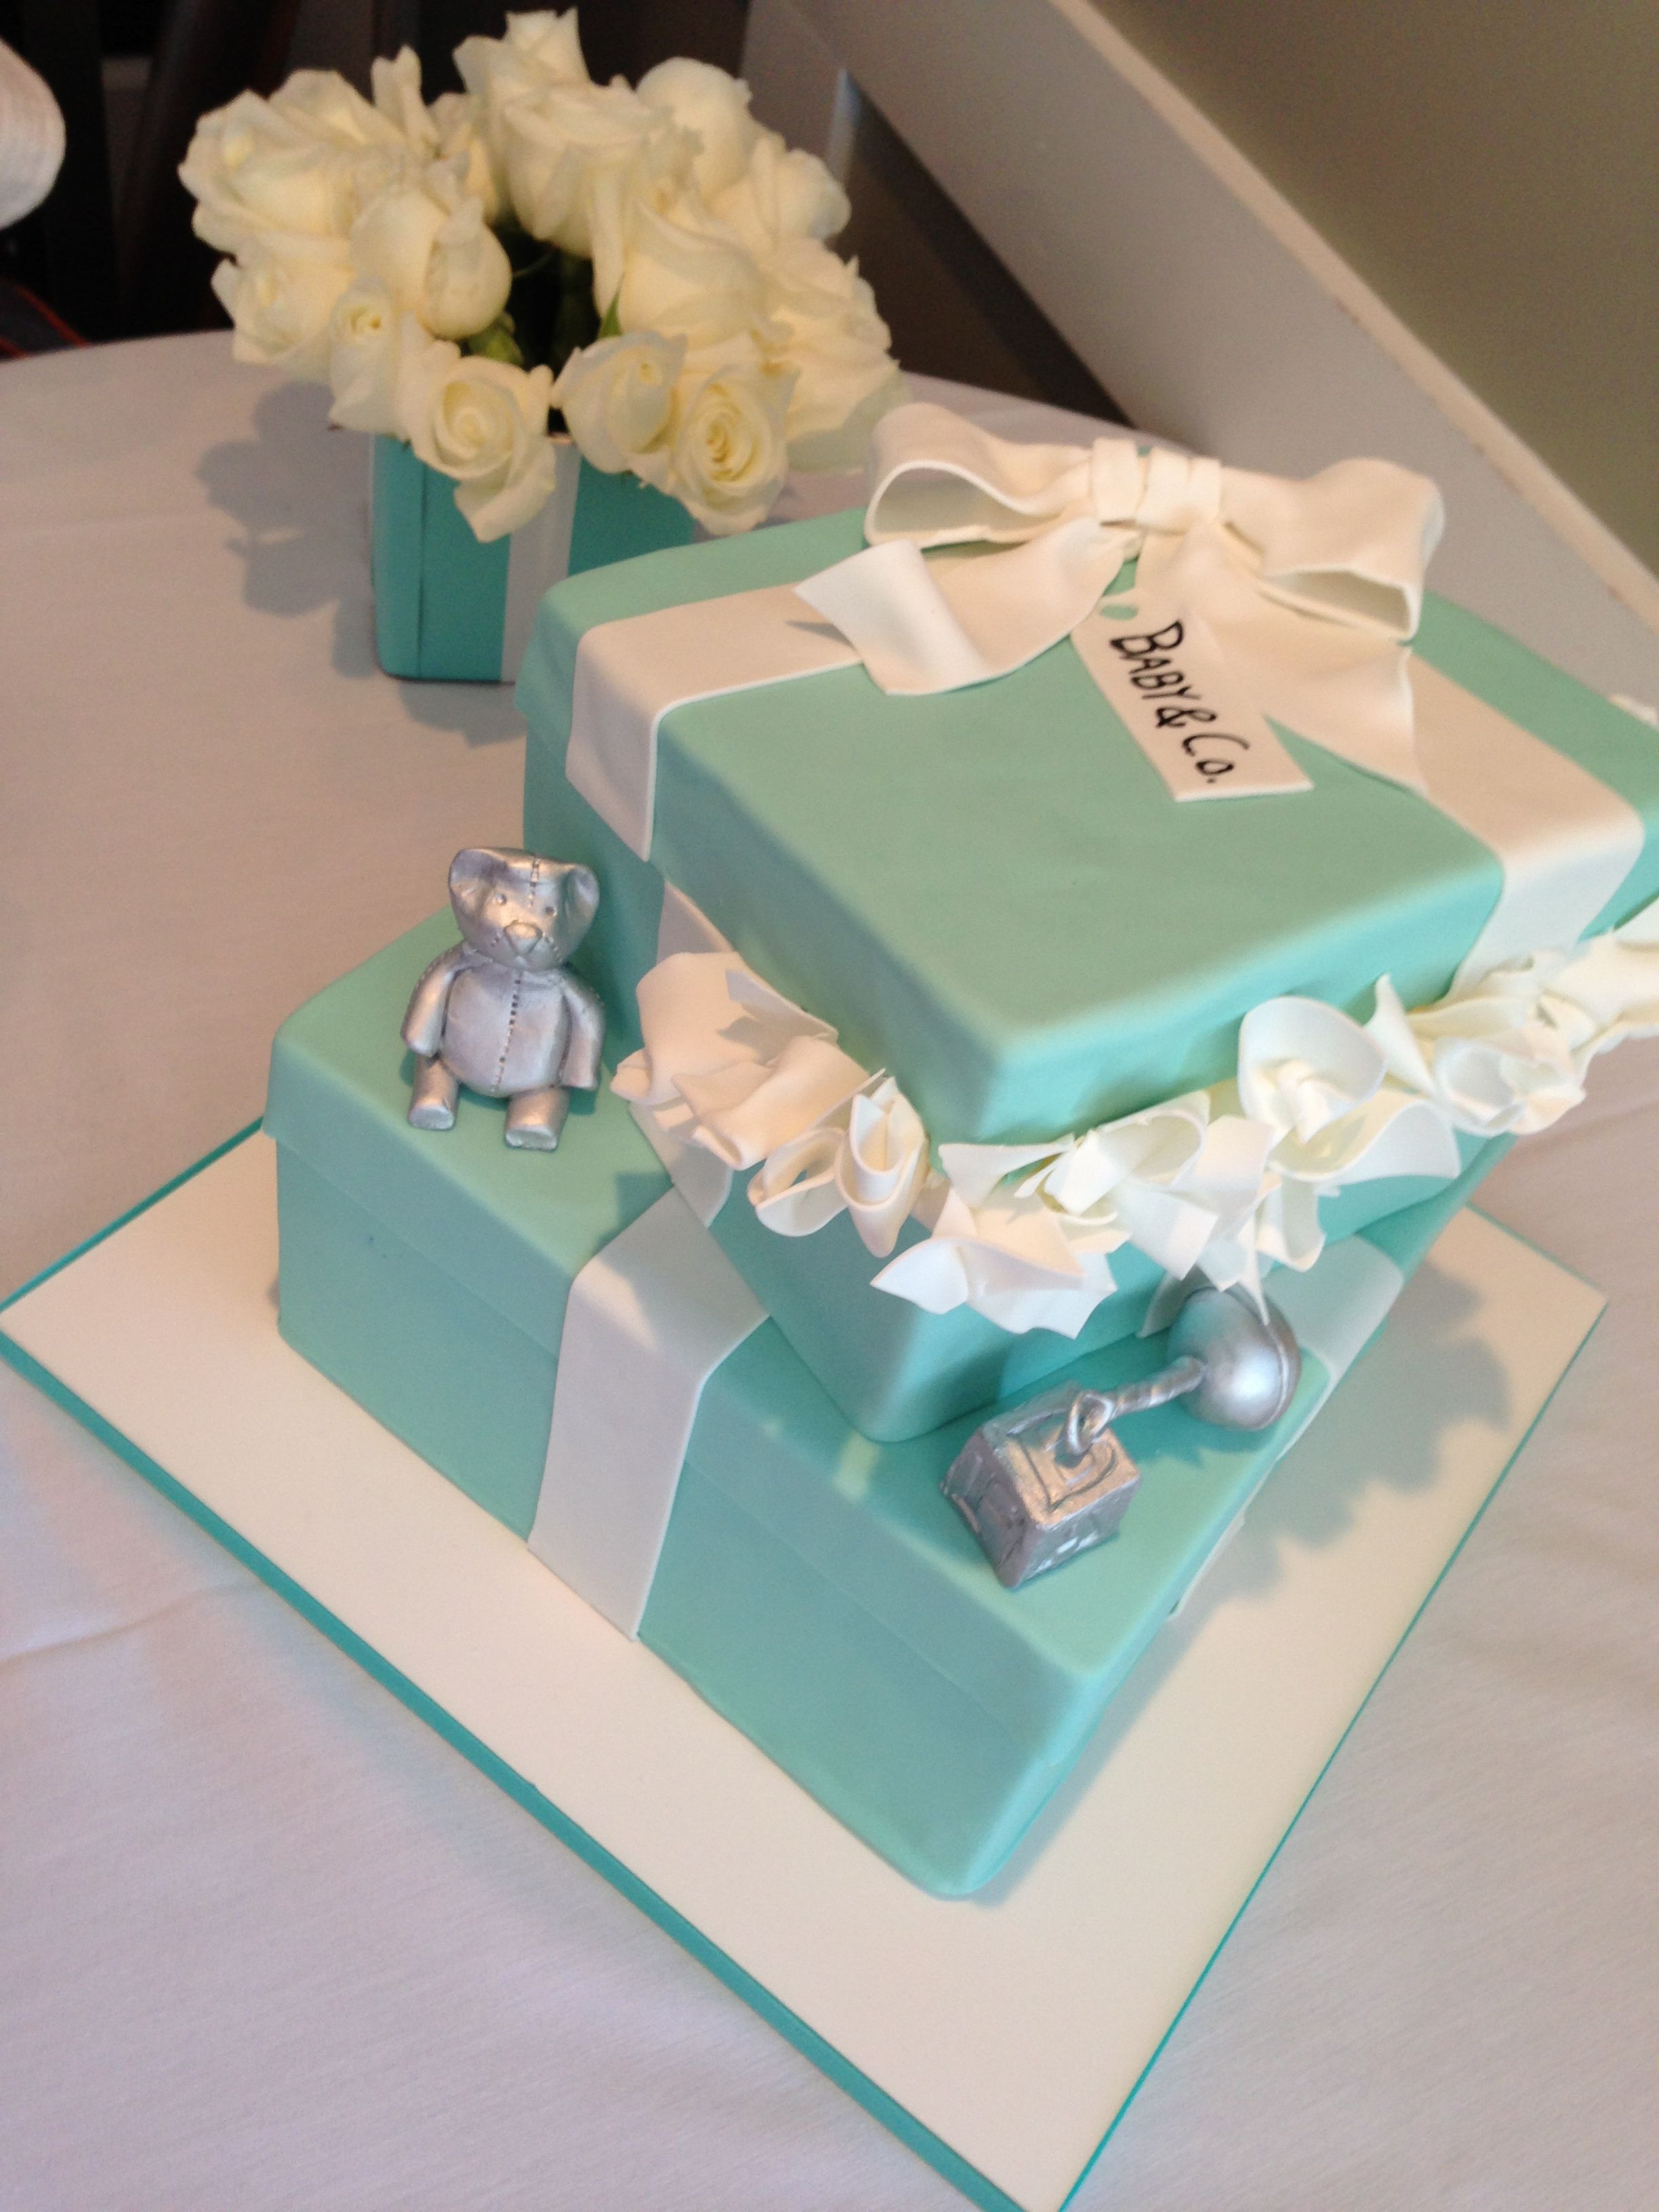 Tiffany And Co.baby : tiffany, co.baby, Brianas, Party, Planning, Ideas, Tiffany, Shower, Theme,, Showers,, Theme